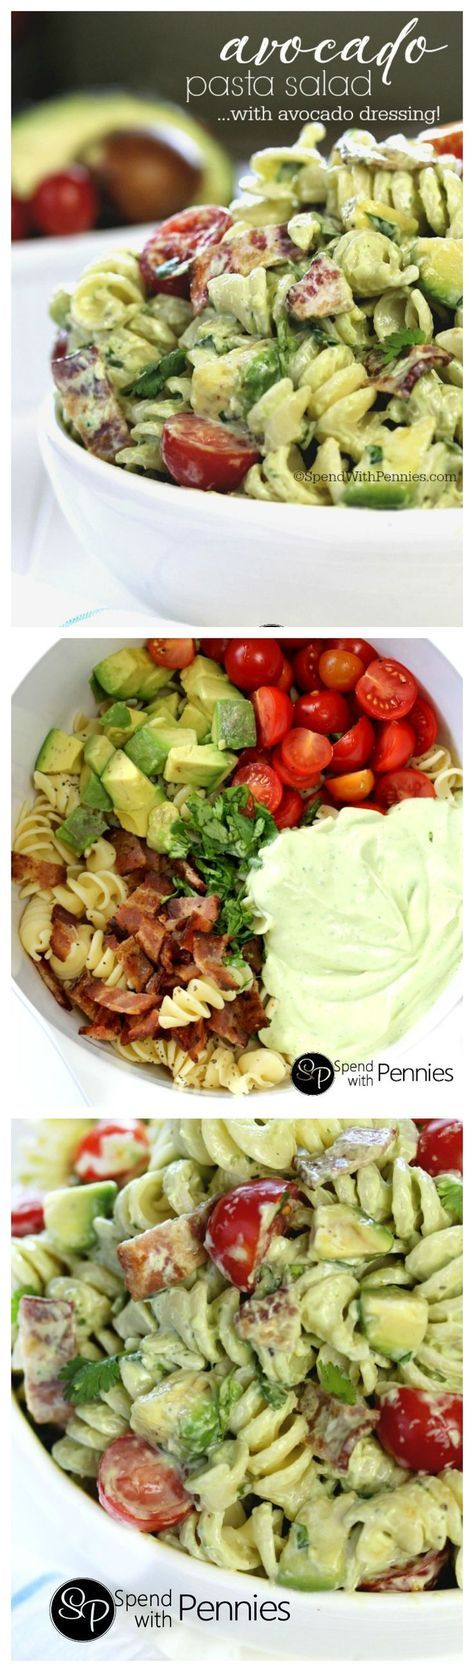 Cold pasta salads are the perfect & satisfying quick dinner or lunch! This delicious pasta salad recipe is loaded with avocados, crispy bacon & juicy cherry tomatoes tossed in a homemade avocado dressing! | Spend with Pennies